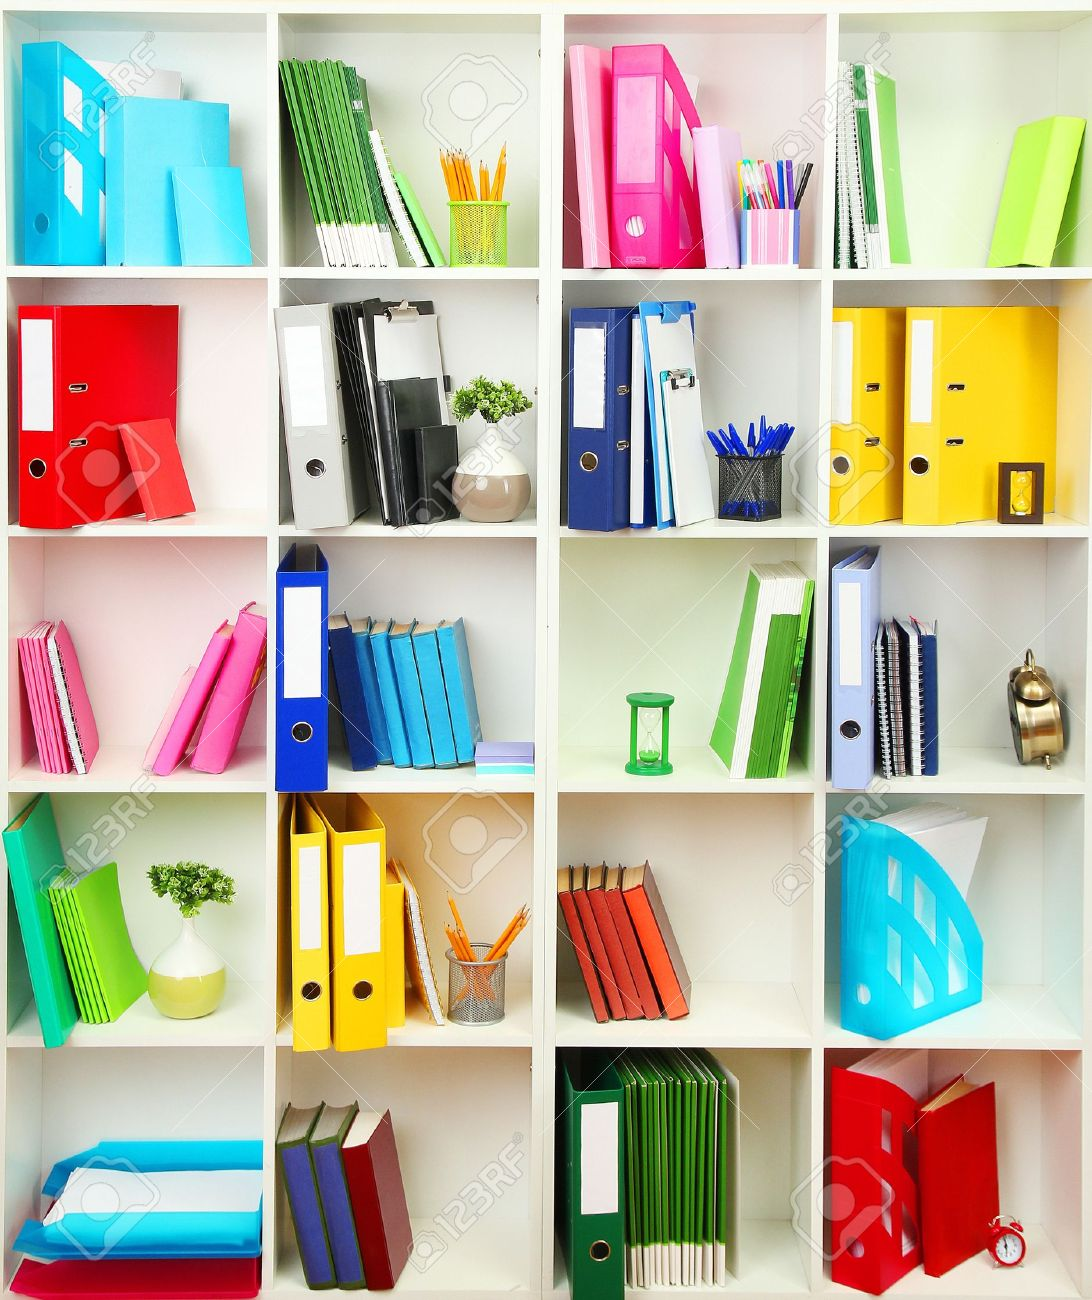 White Office Shelves With Different Stationery, Close Up Stock Photo    19412729